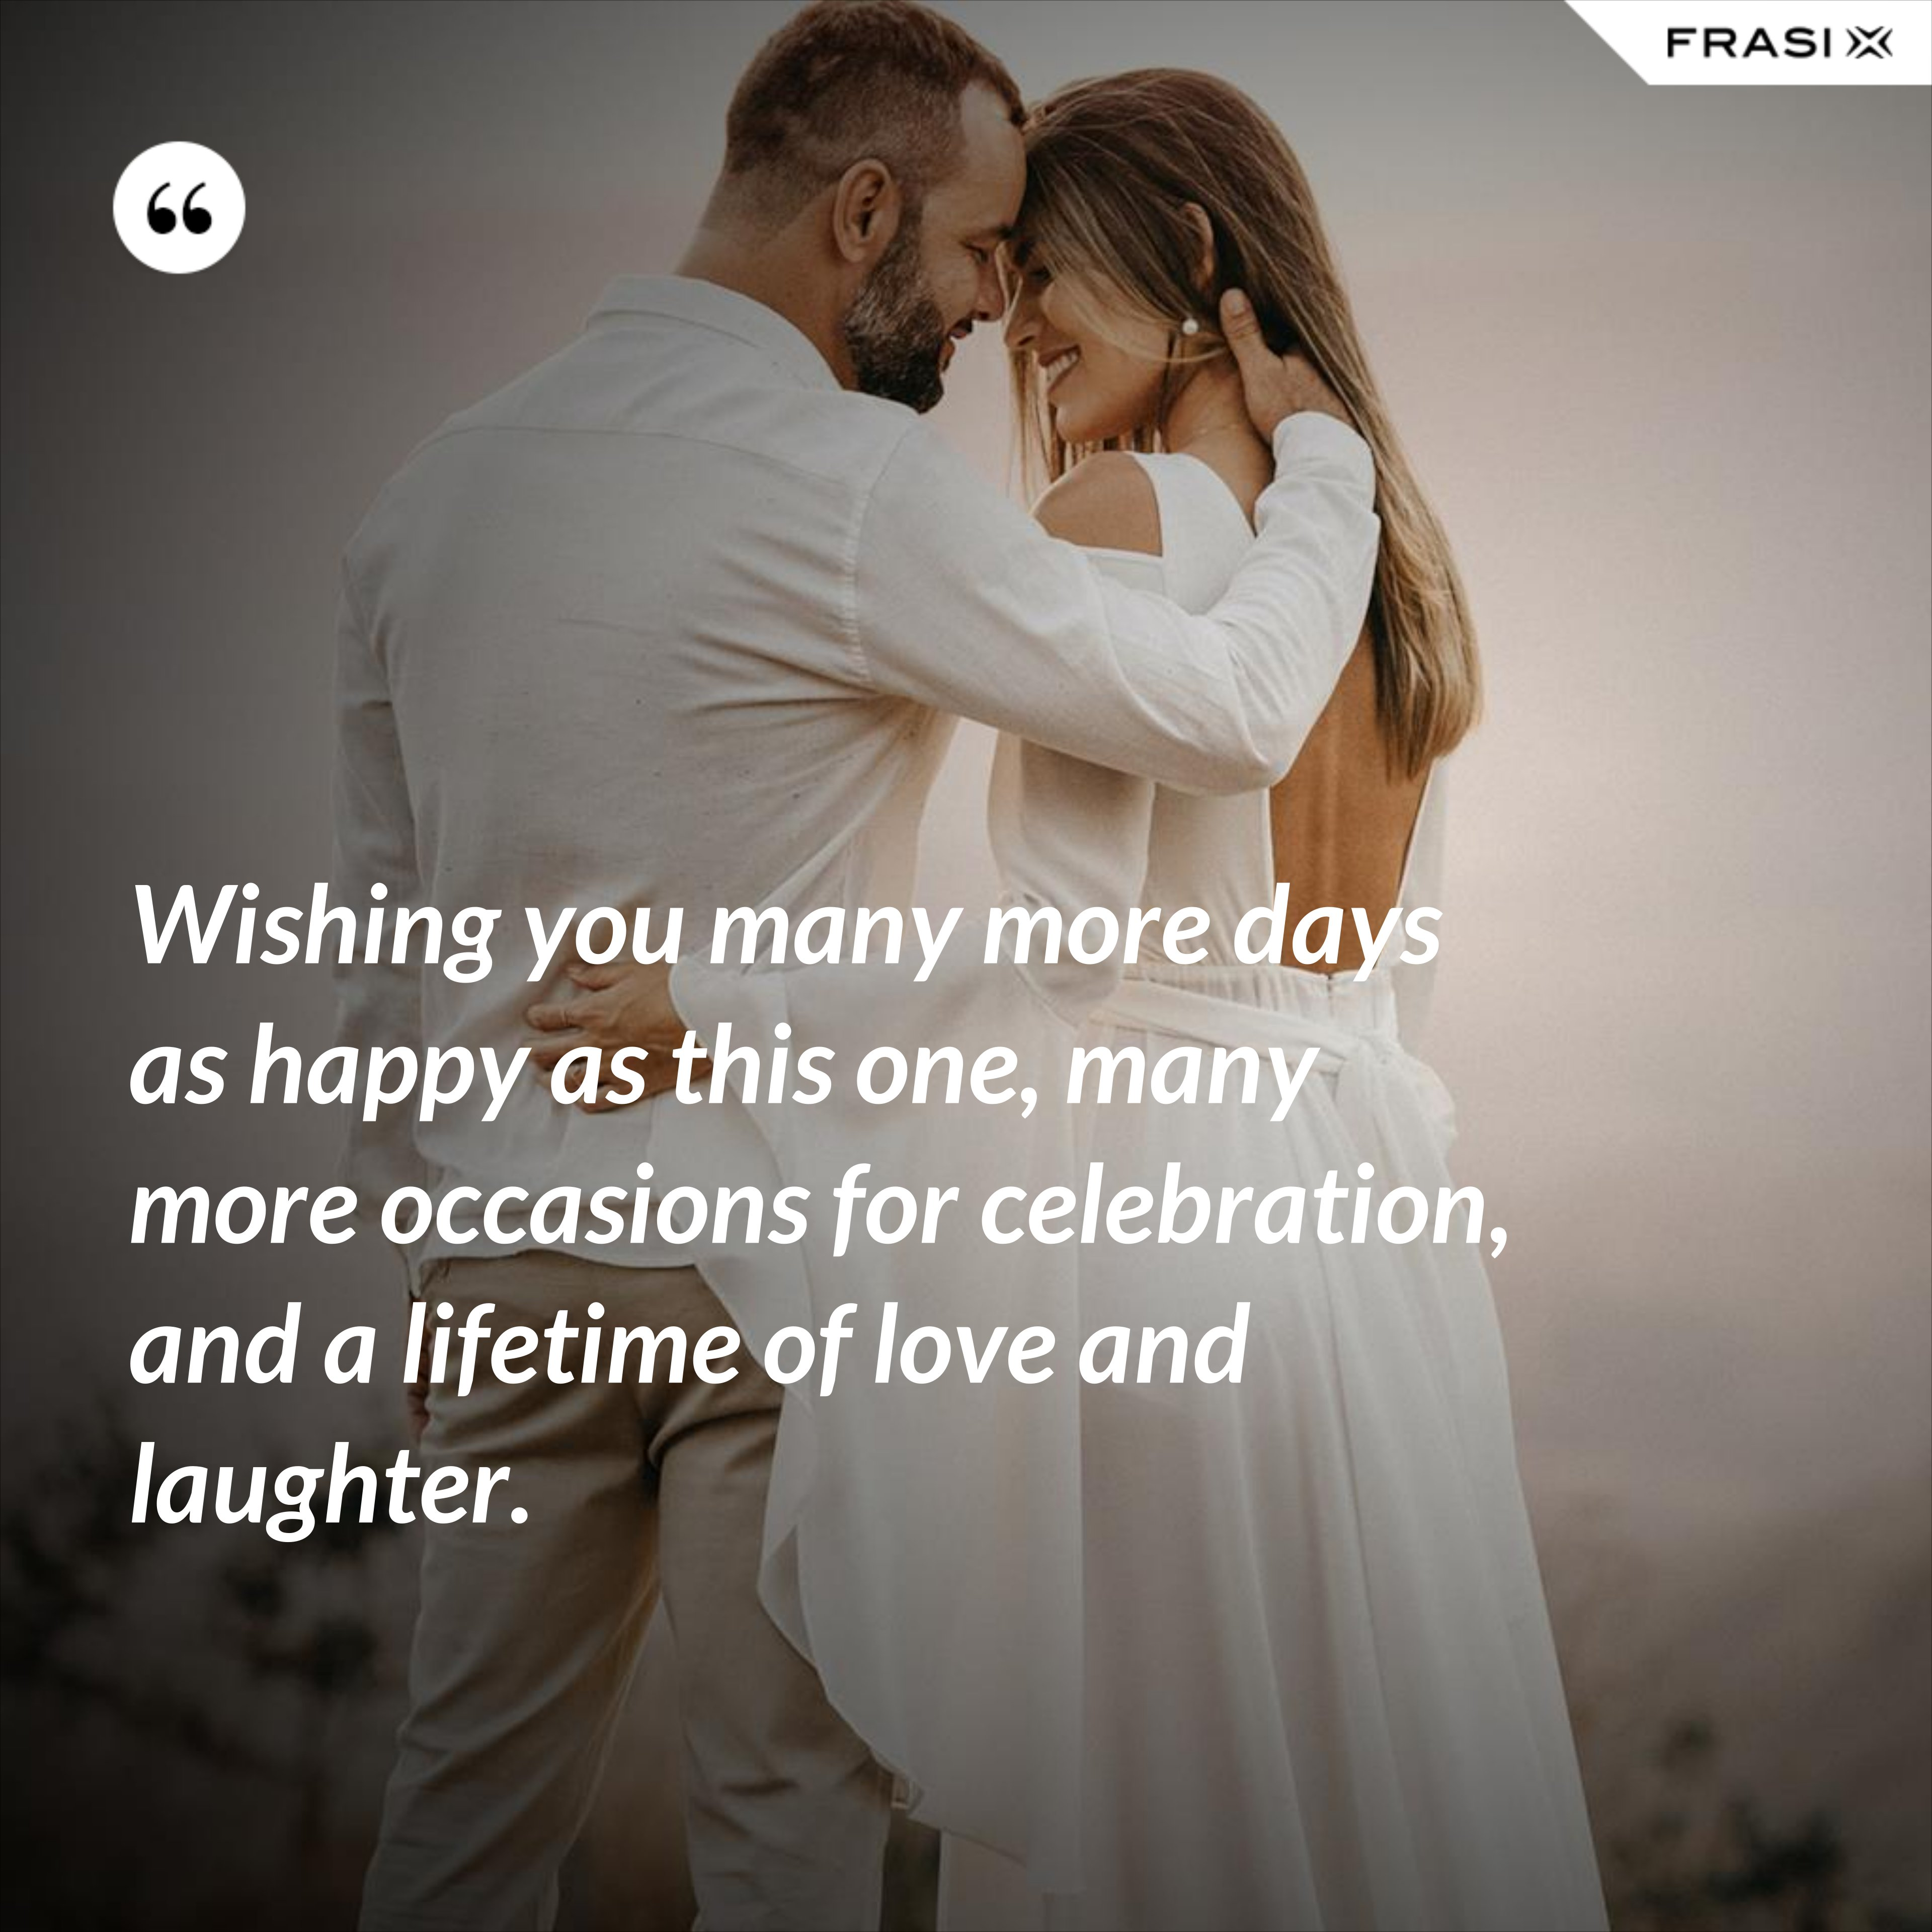 Wishing you many more days as happy as this one, many more occasions for celebration, and a lifetime of love and laughter. - Anonimo